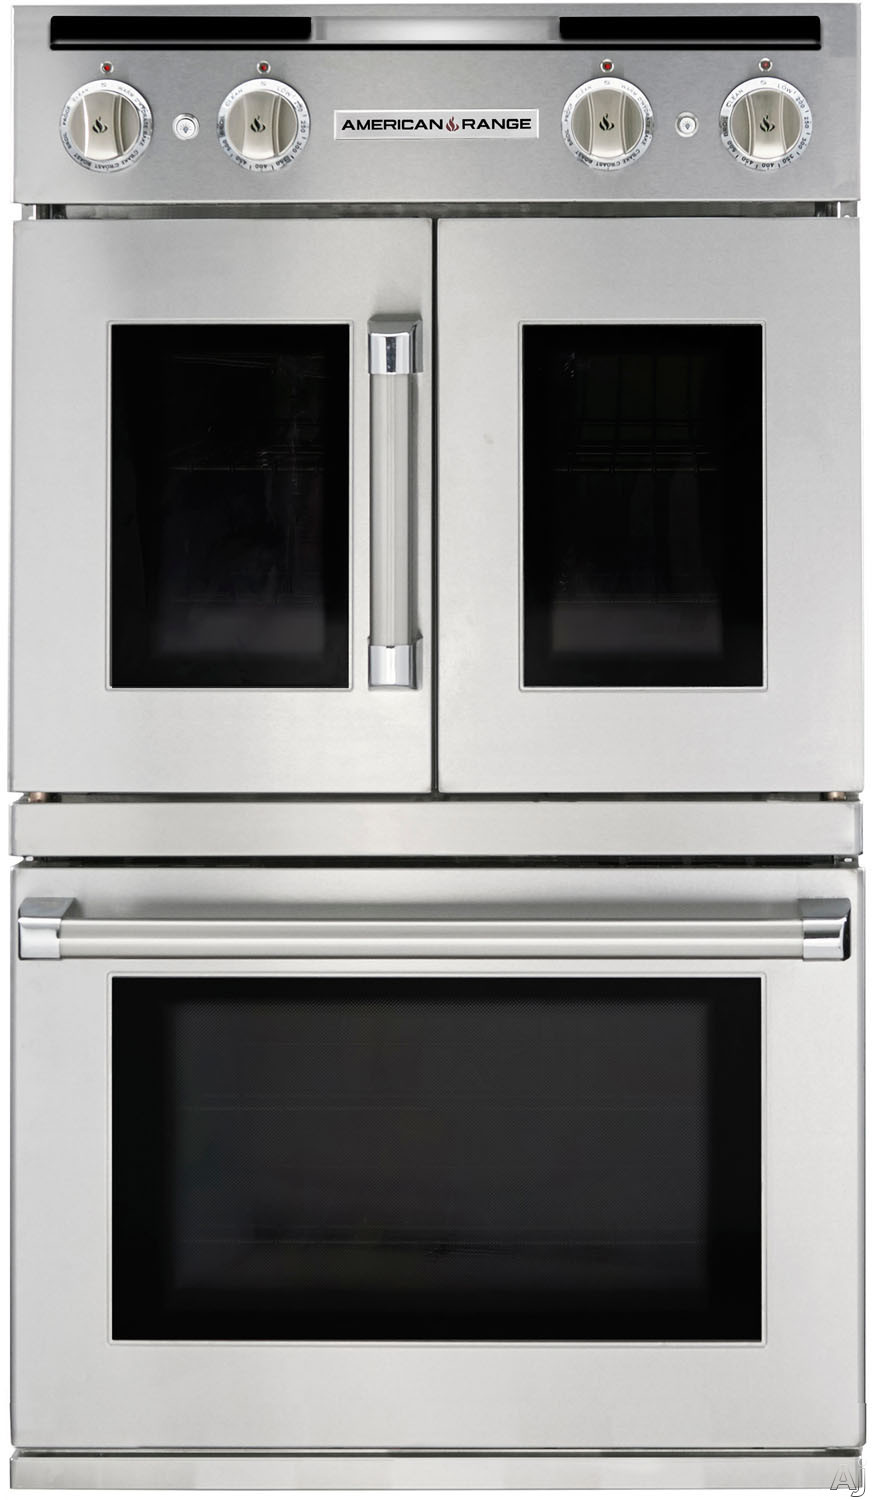 American Range Legacy Series AROFSG230 30 Inch Double French/Chef Door Gas Wall Oven with 4.7 cu. ft. Capacity, Innovection Convection, Manual Clean, Infrared Broiler, Proofing and Porcelainized Inter